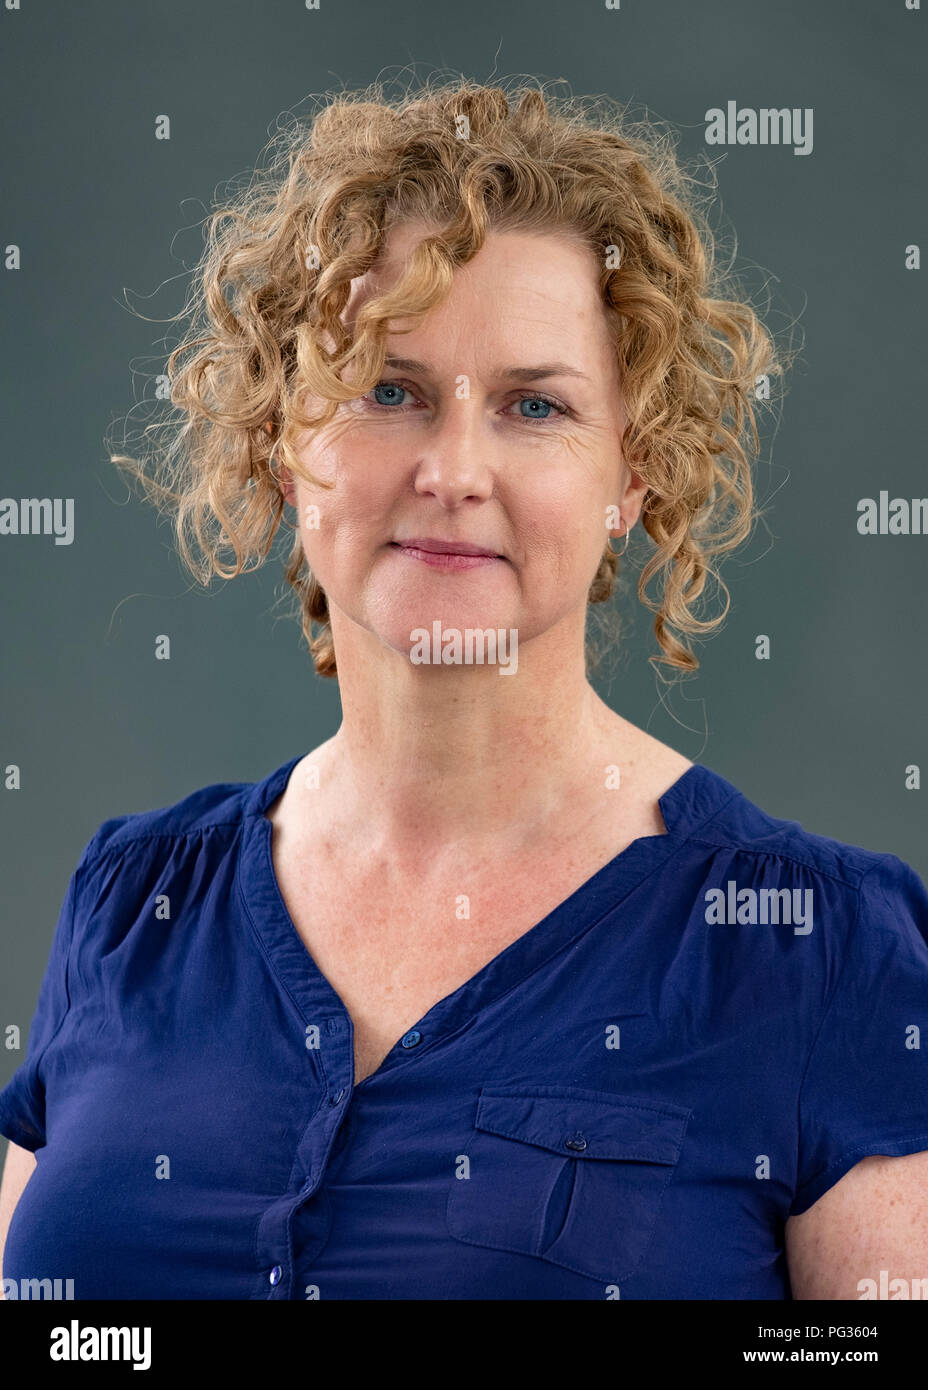 Edinburgh, Scotland, UK. 23 August 2108. Emma Viskic the Australian crime writer. Her new book is 'And fire Came Down'. Credit: Iain Masterton/Alamy Live News - Stock Image